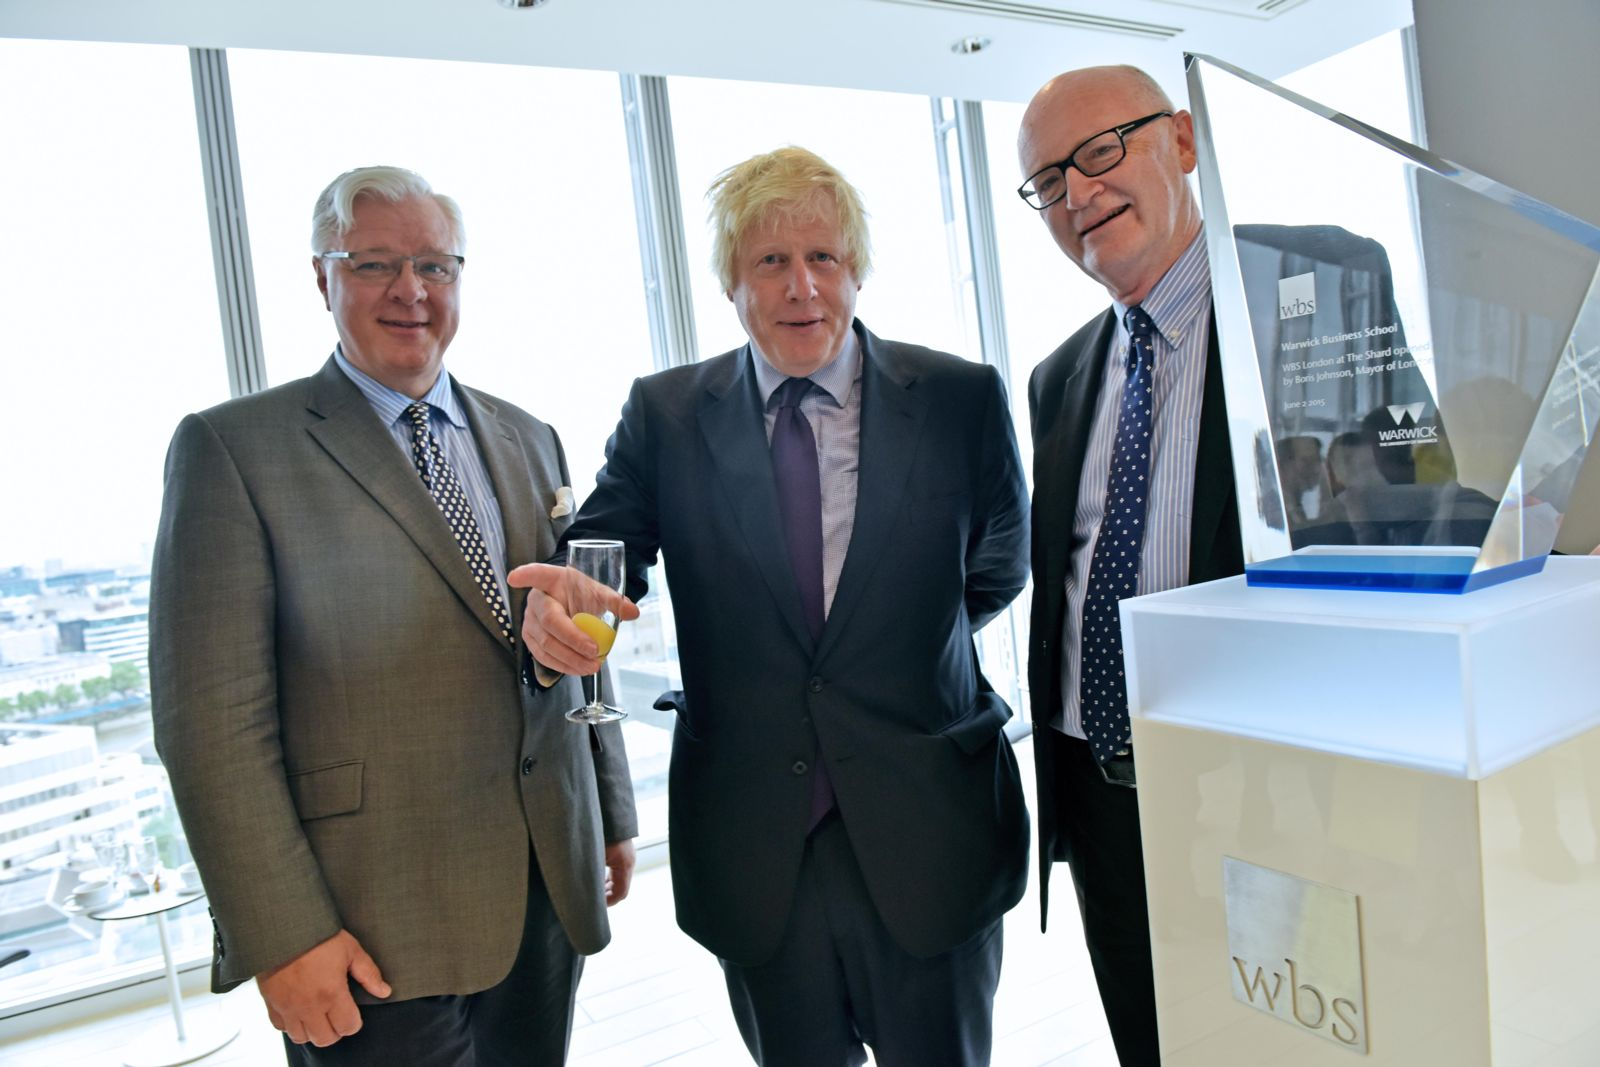 Boris Johnson, Mark Taylor and Nigel Thrift with the glass sculpture at WBS London